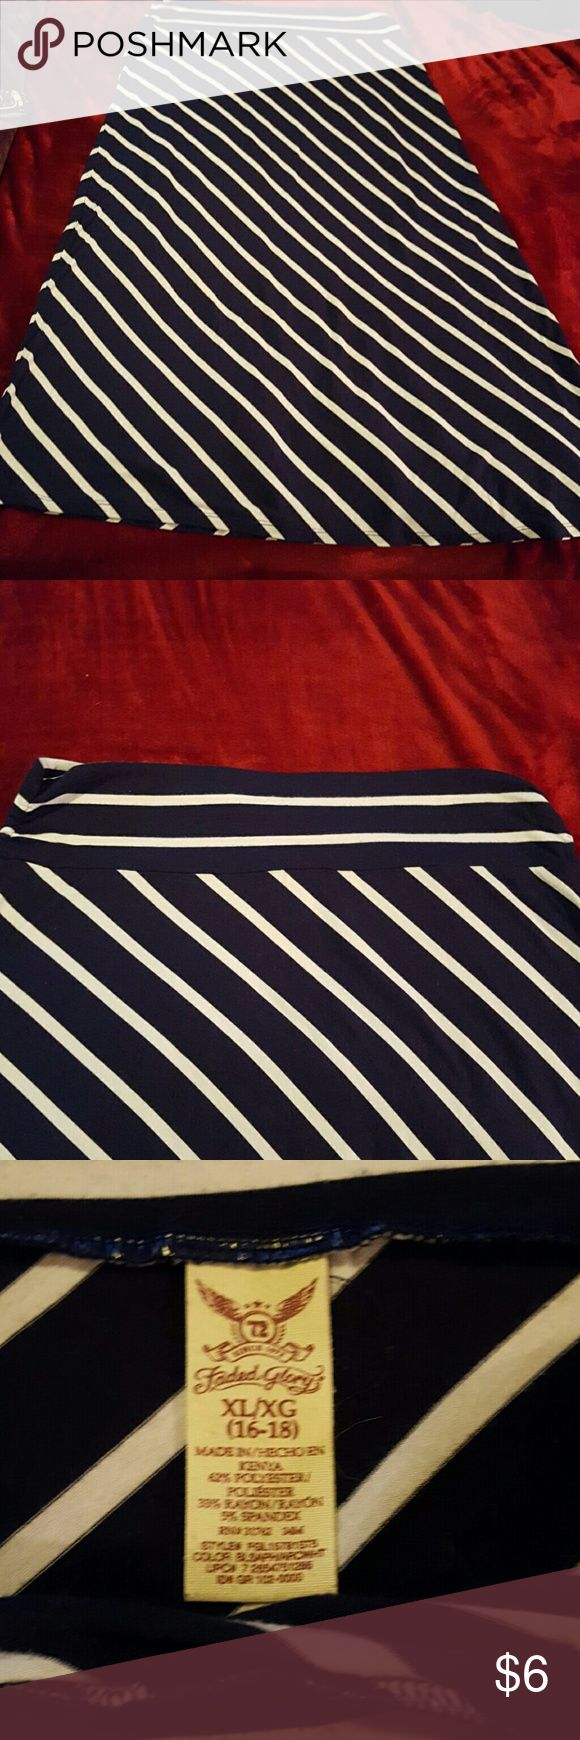 Faded Glory plus sz 16/18 navy & white maxi skirt This is a cute maxi skirt from Faded Glory. It is navy and white and is a size 16/18 it has been worn so there is some slight pilling starting. It is polyester and rayon Faded Glory Skirts Maxi